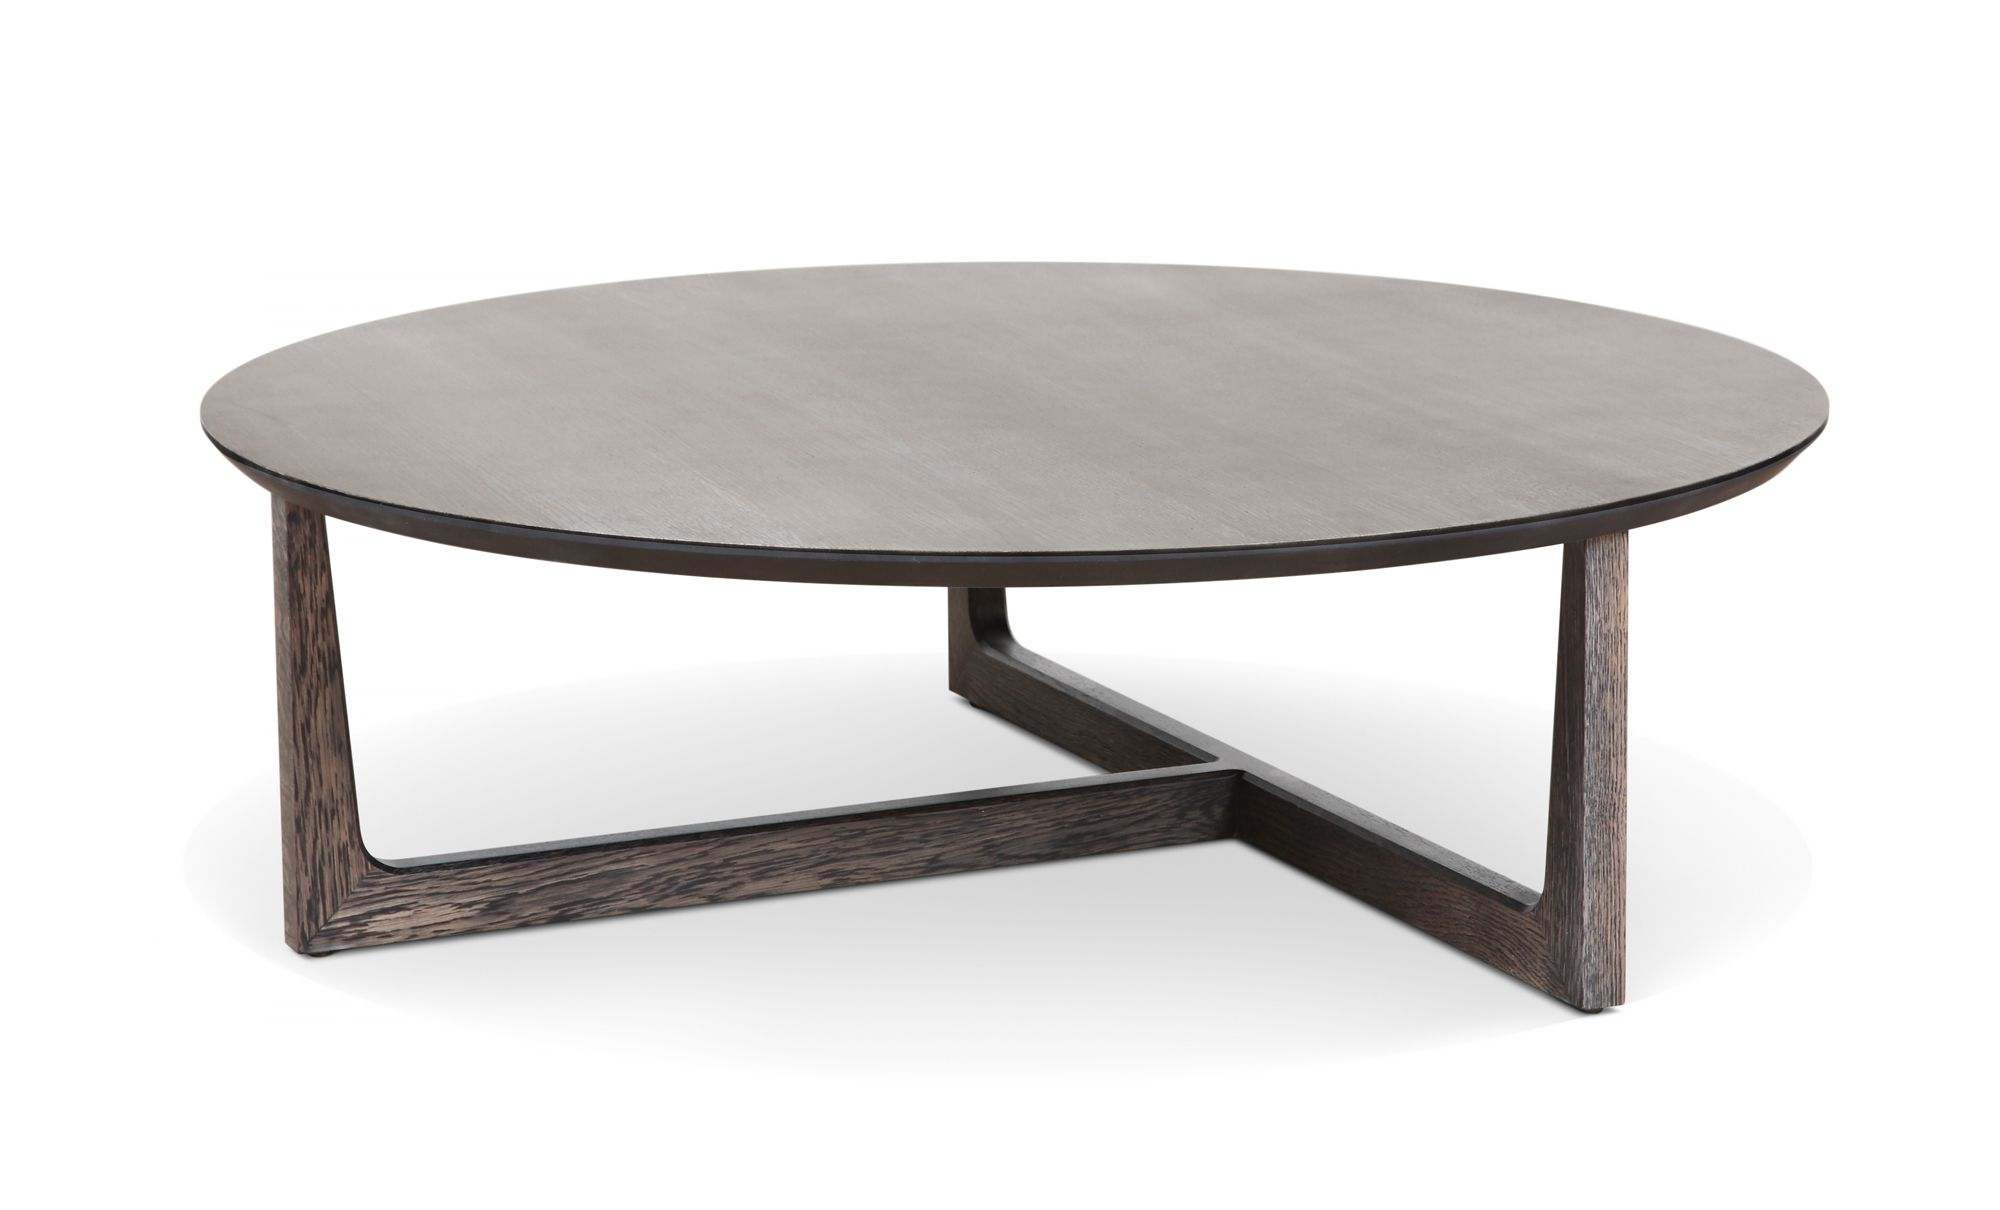 The Sky Coffee Tables And Side Tables Are A Proposal In Intended For Widely Used Evalline Modern Dark Walnut Coffee Tables (View 19 of 20)